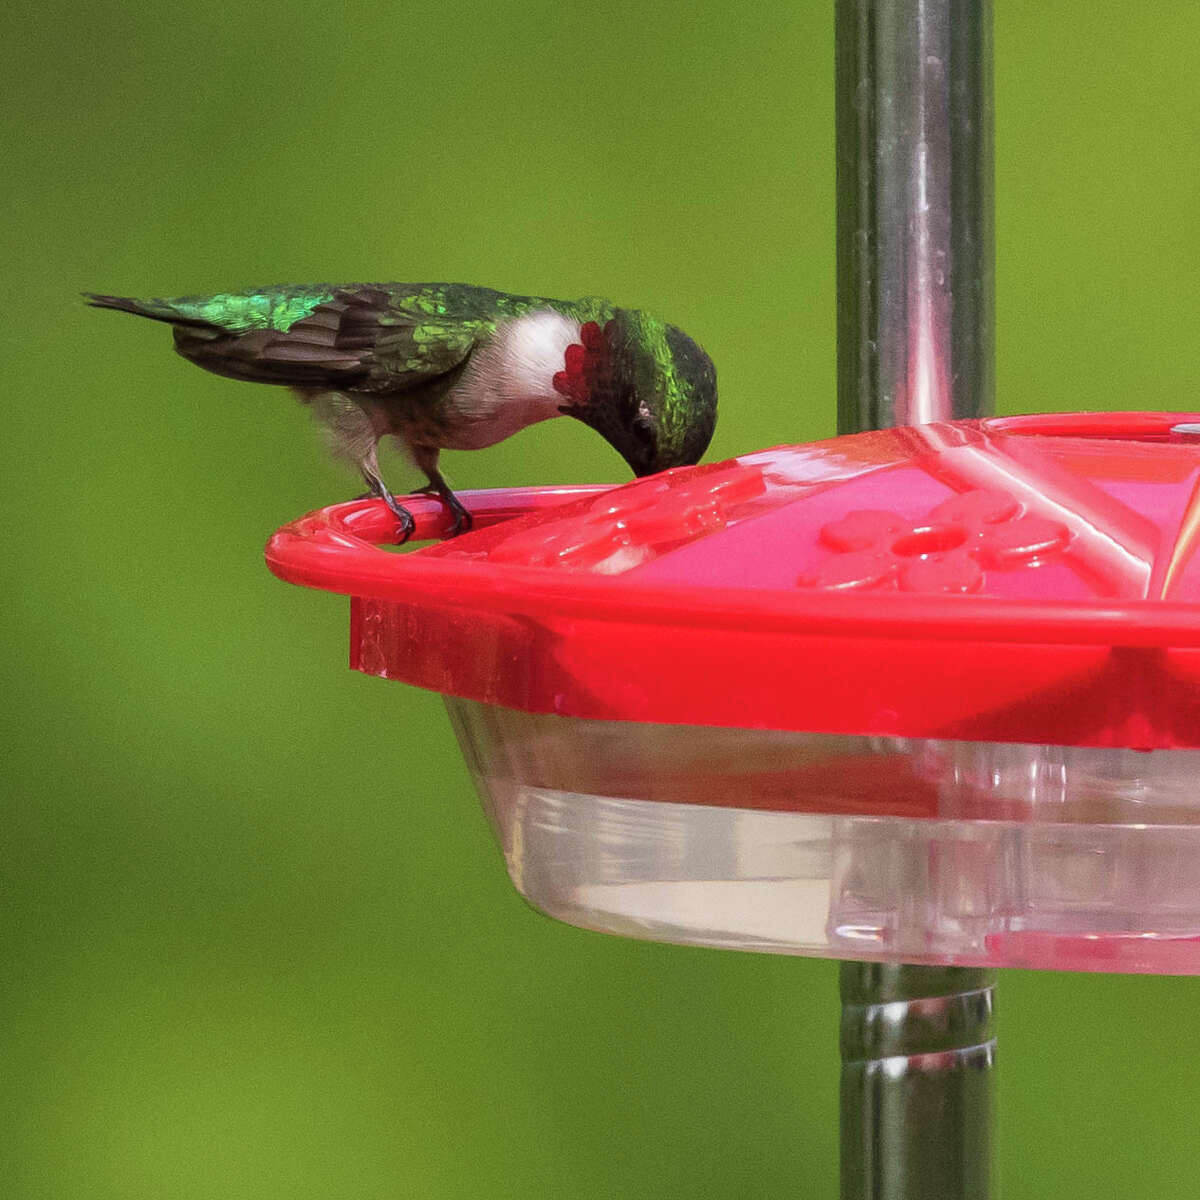 Local photographer Tom Voss captured photos of birds, like the ruby-throated humming bird, in his backyard recently.